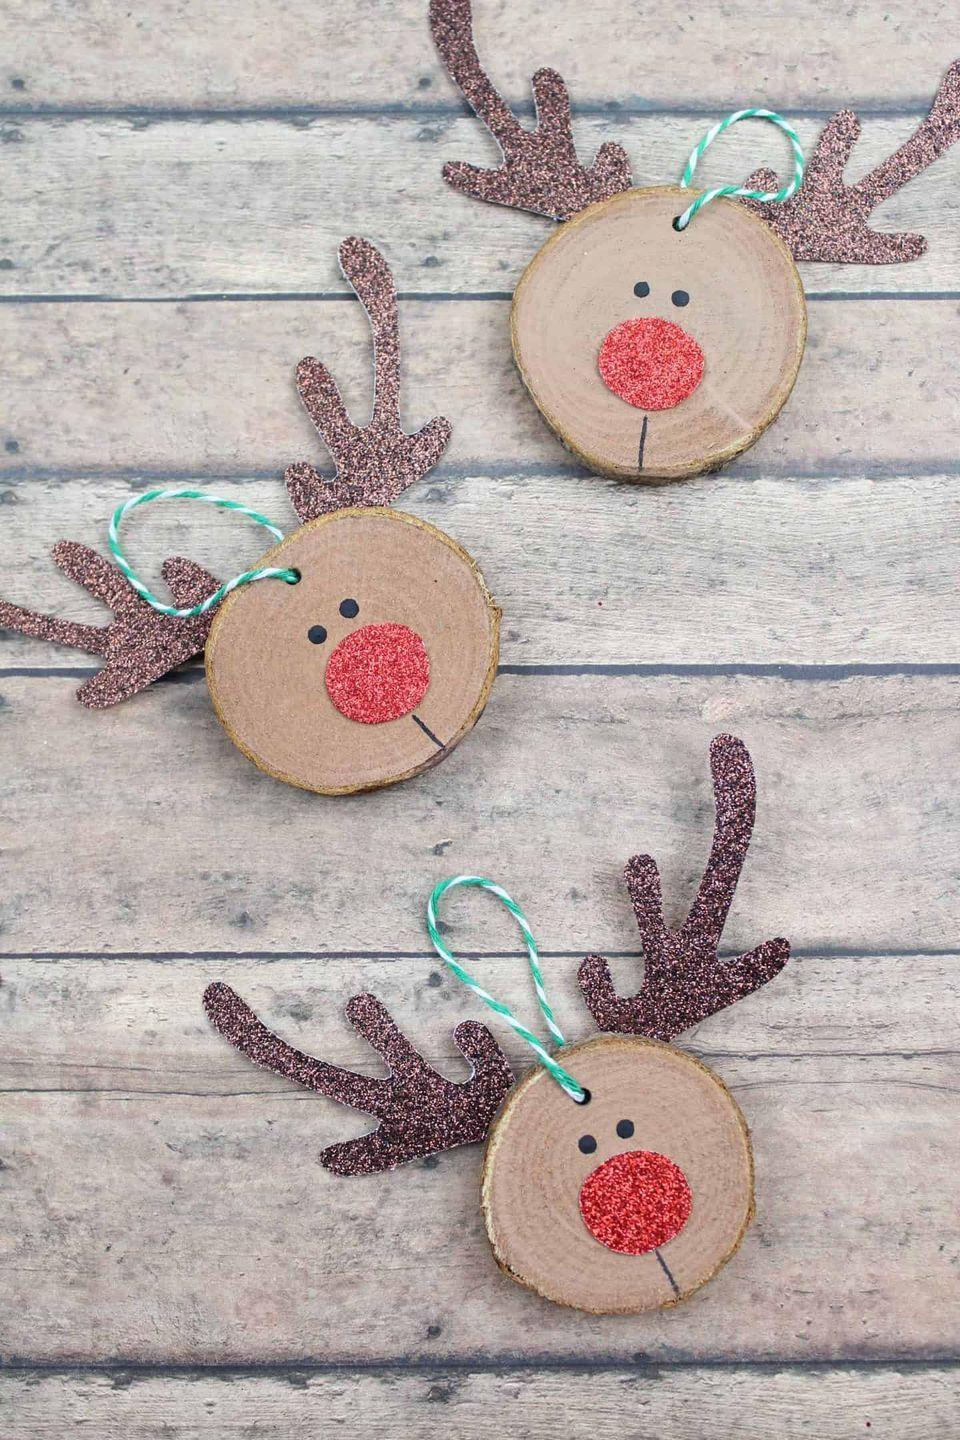 """<p>It's a snap to make these cute Rudolph ornaments—plus, their sparkly red noses will look so pretty next to your twinkle lights!</p><p><strong>Get the tutorial at <a href=""""https://www.theinspirationedit.com/rudolf-christmas-craft-diy-craft-for-kids/"""" rel=""""nofollow noopener"""" target=""""_blank"""" data-ylk=""""slk:The Inspiration Edit"""" class=""""link rapid-noclick-resp"""">The Inspiration Edit</a>.</strong></p><p><a class=""""link rapid-noclick-resp"""" href=""""https://www.amazon.com/Unfinished-Craft-Christmas-Ornaments-William/dp/B07FZM1GKQ/ref=sr_1_5?tag=syn-yahoo-20&ascsubtag=%5Bartid%7C10050.g.1070%5Bsrc%7Cyahoo-us"""" rel=""""nofollow noopener"""" target=""""_blank"""" data-ylk=""""slk:SHOP WOOD SLICES"""">SHOP WOOD SLICES</a><br></p>"""